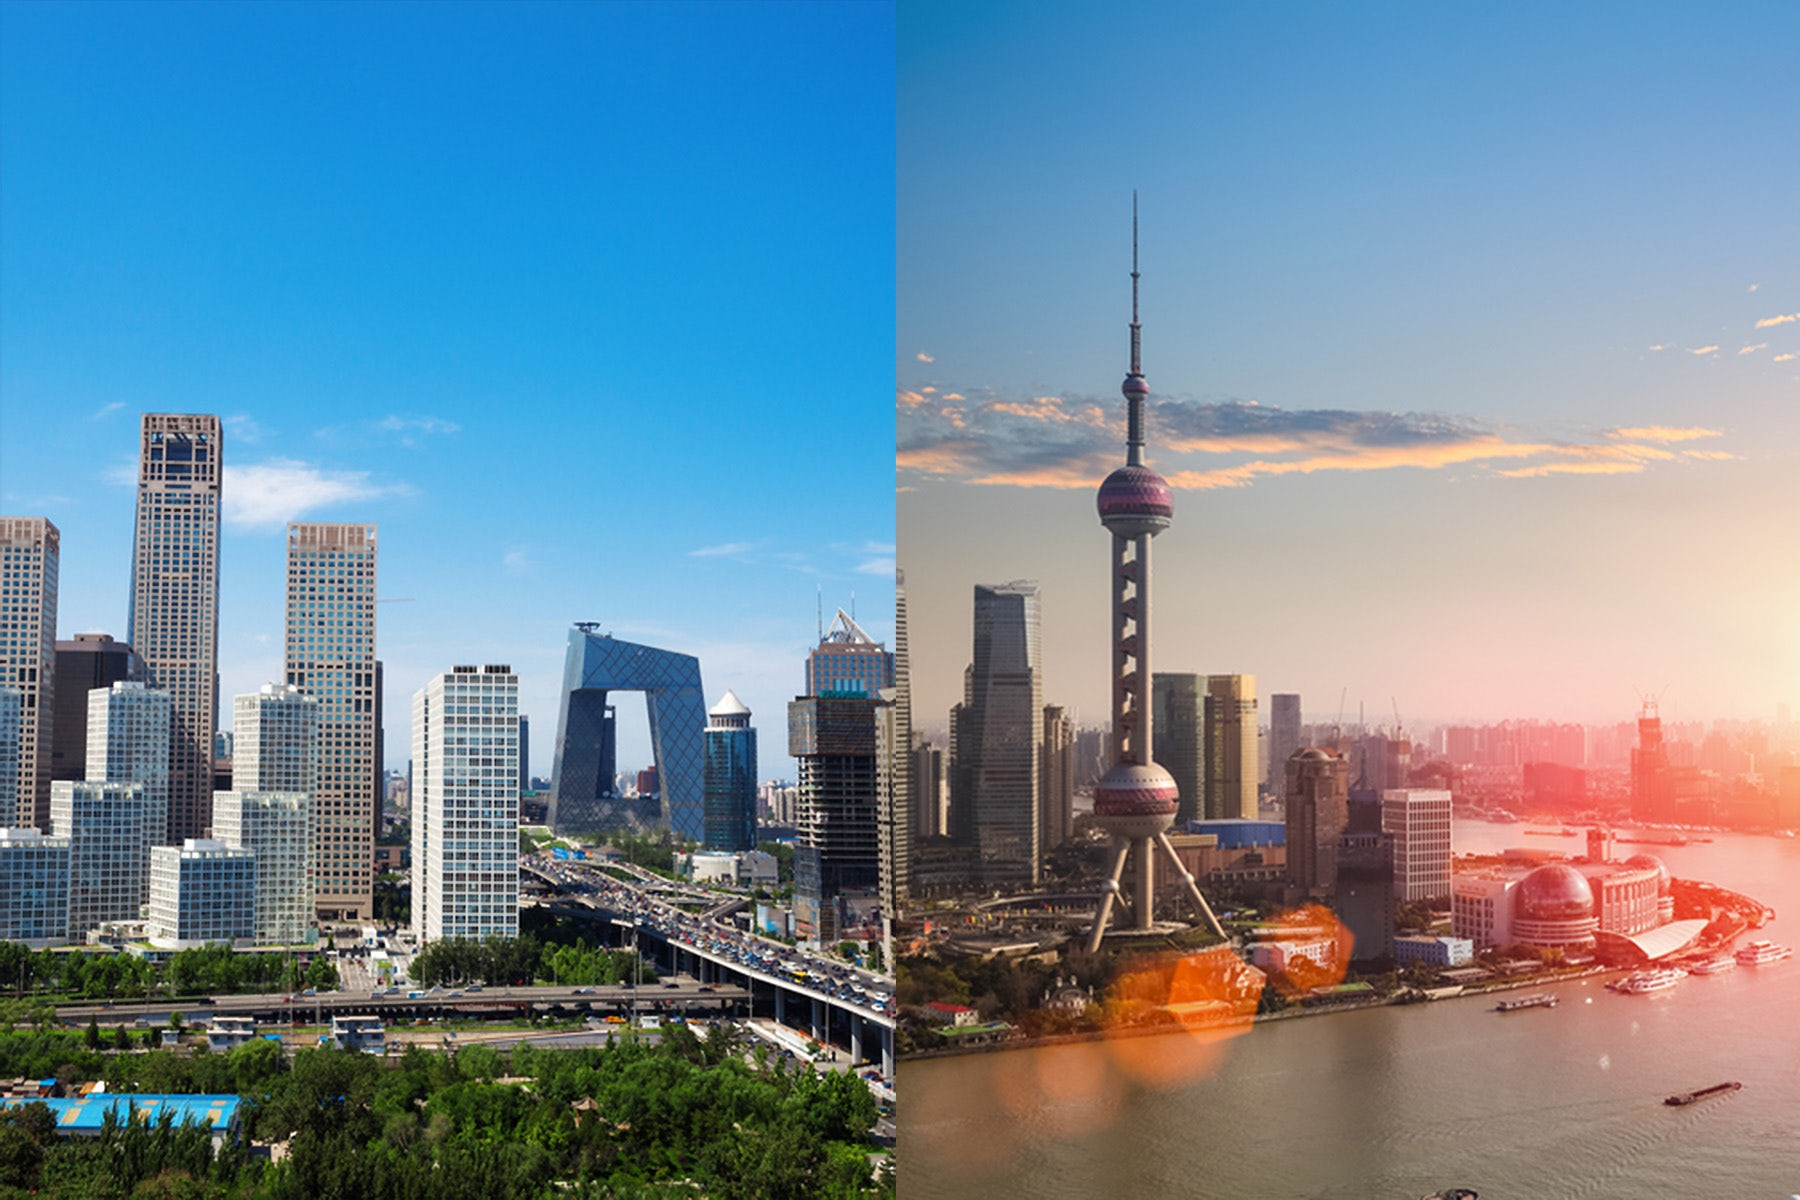 Beijing (L) and Shanghai (R) skylines | Source: Shutterstock